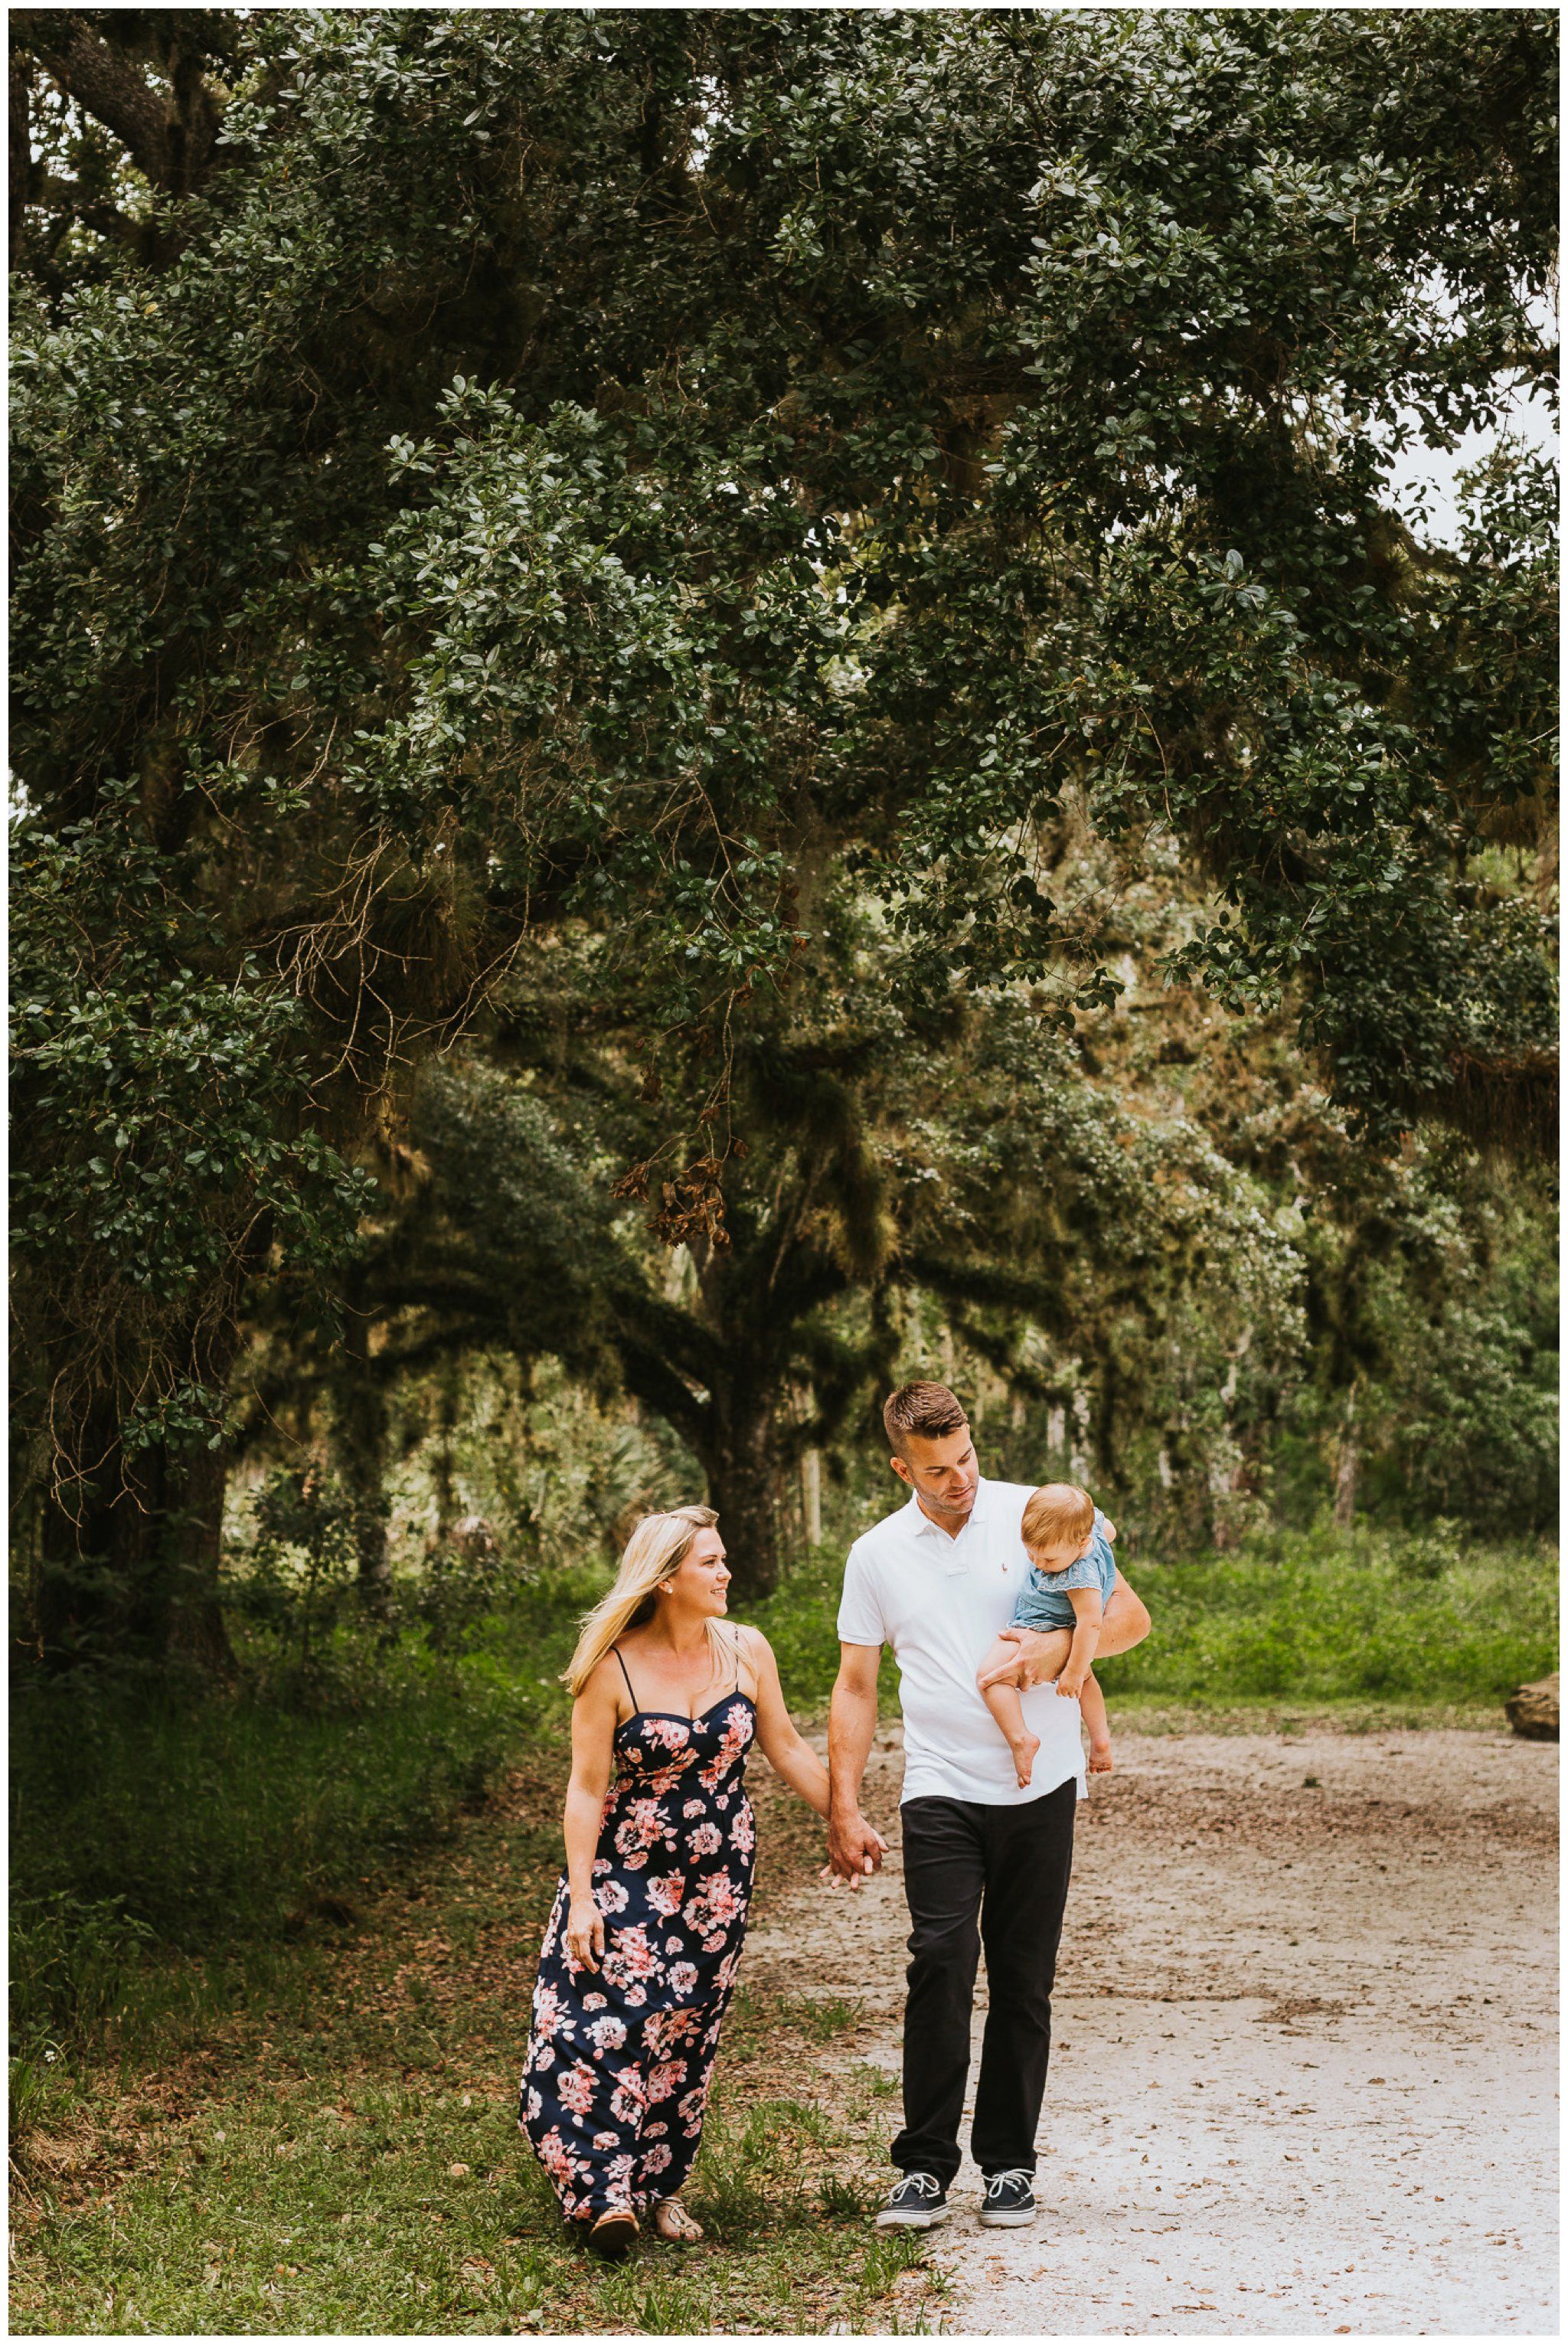 Kimberly Smith Photography| Jupiter Family Photography| Jupiter Florida Photographers| Palm Beach Family Photographers| Palm Beach Photographers | Riverbend Park Family Photos | Riverbend Park_0060.jpg